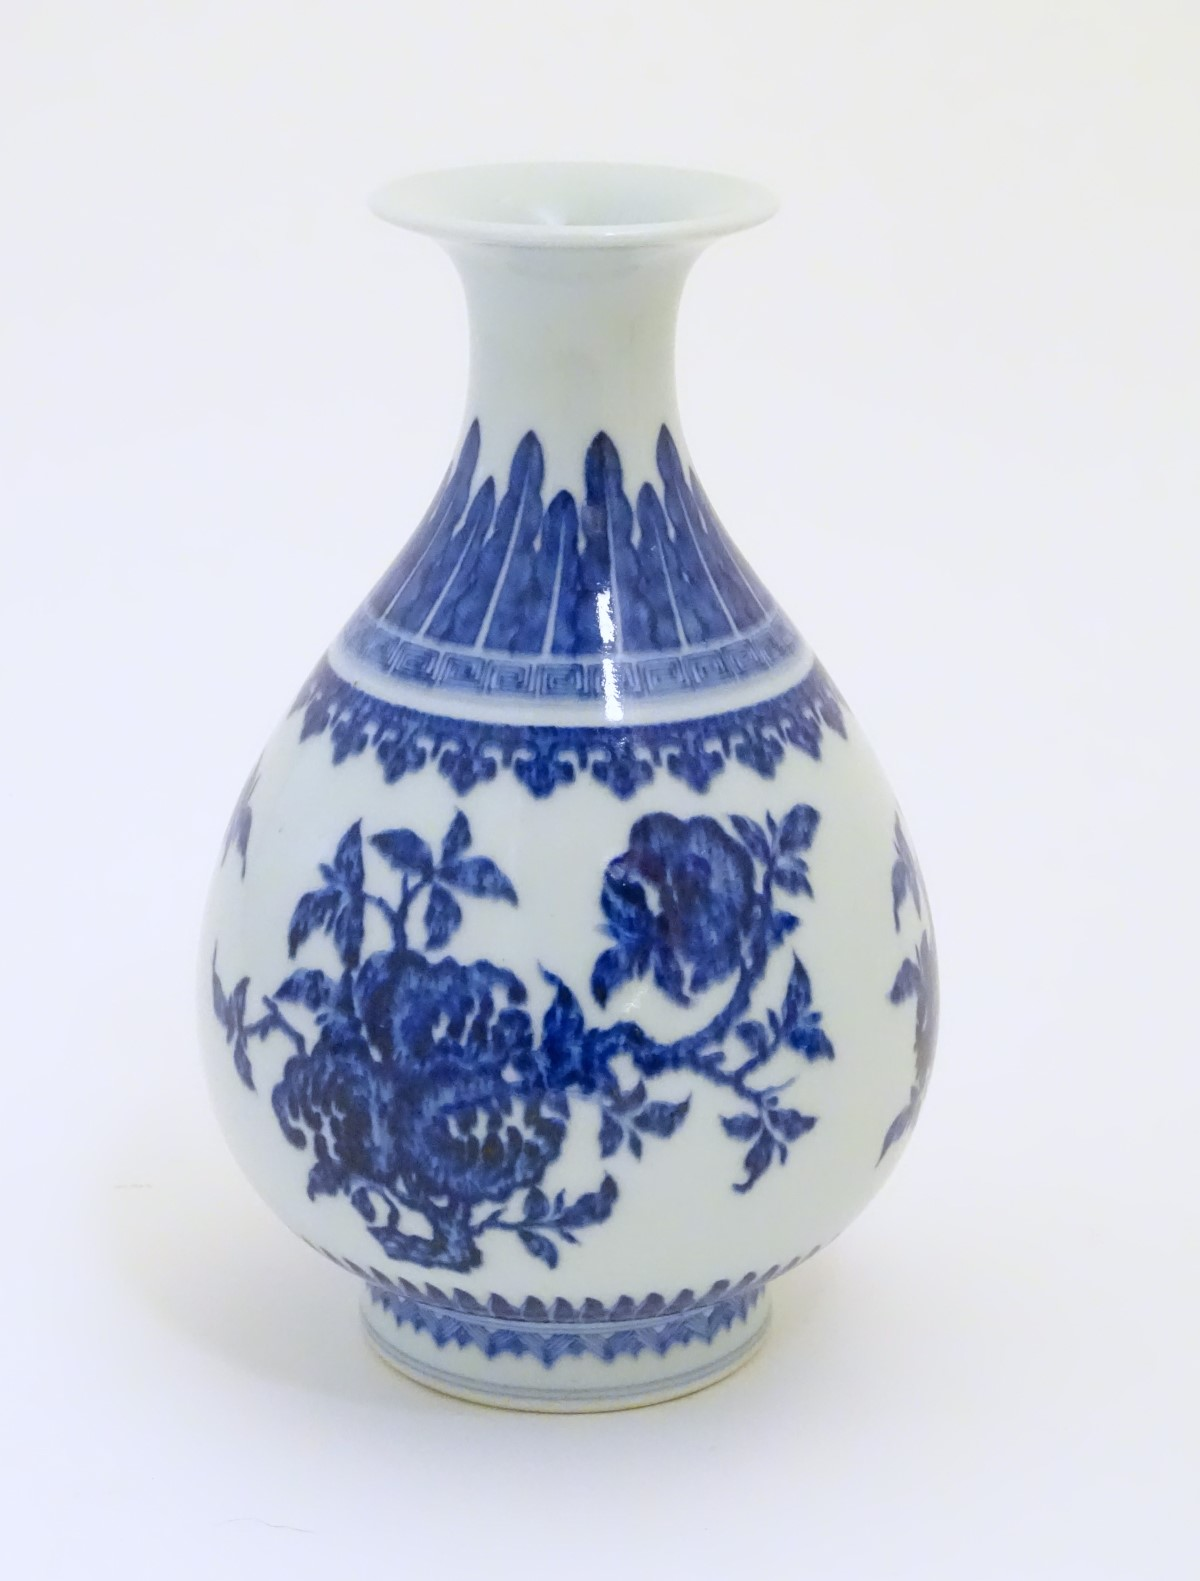 Lot 33 - A Chinese blue and white pear shaped / yuhuchunping vase with a flared rim,